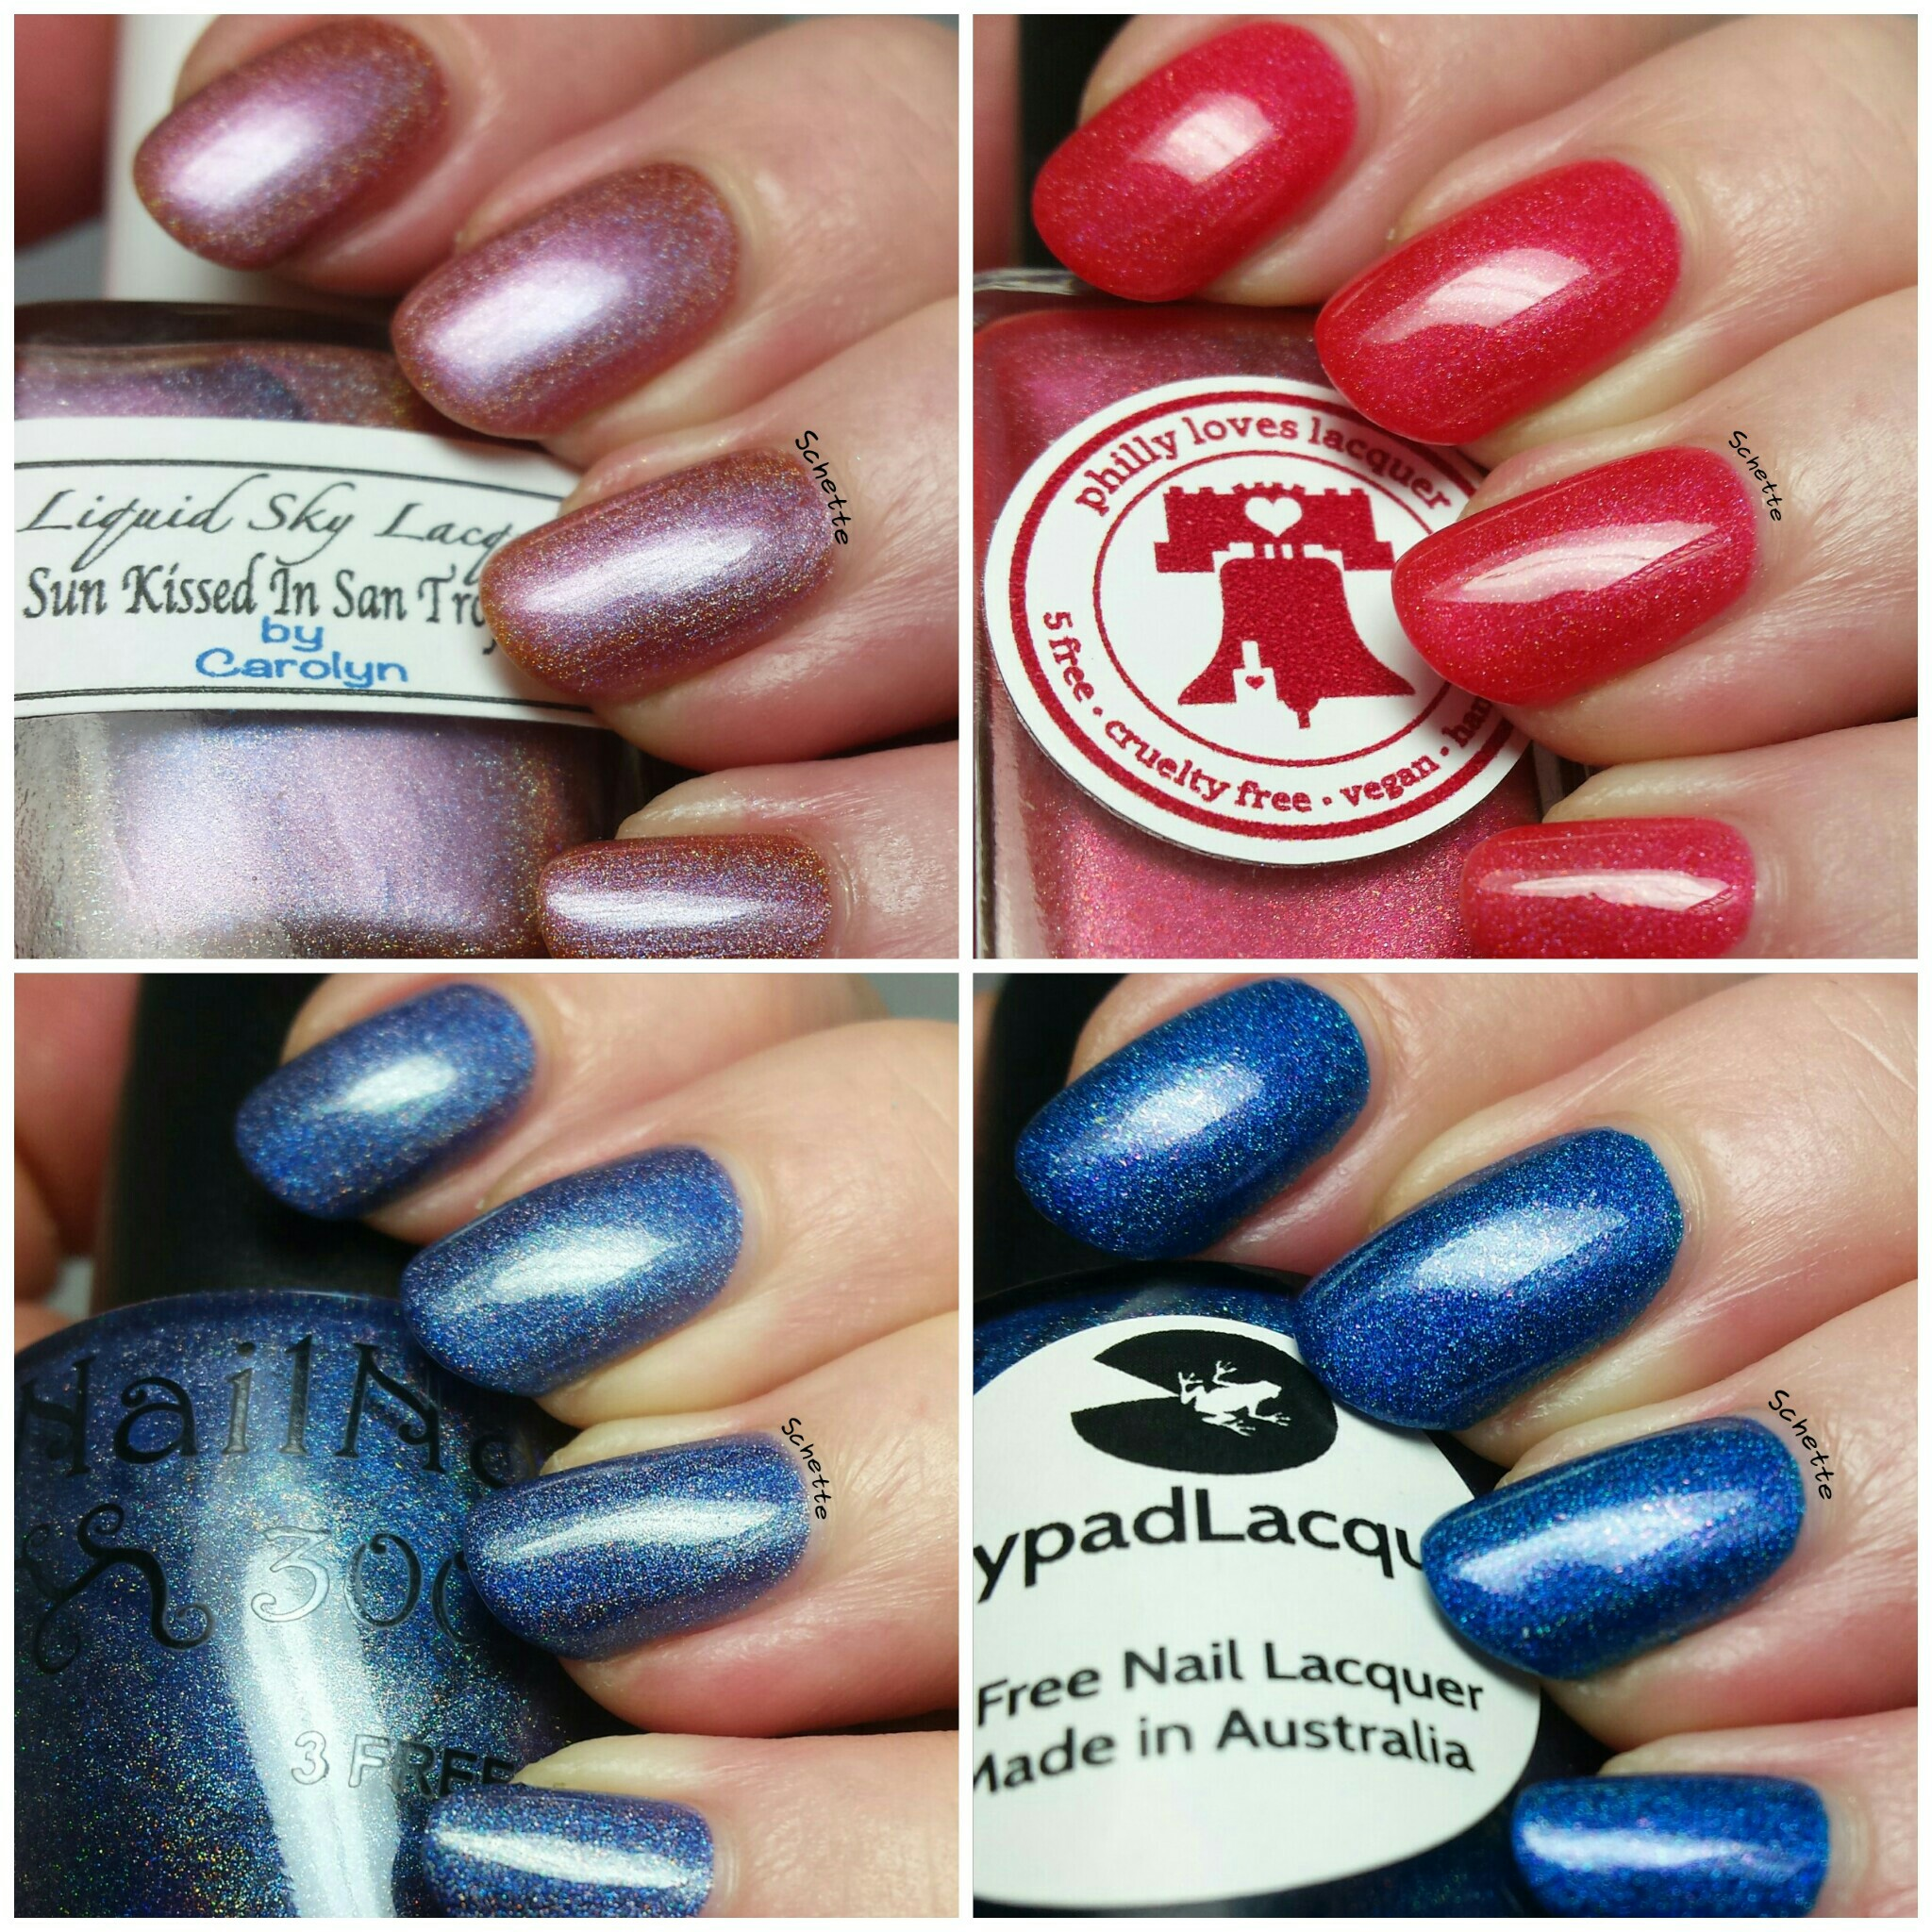 Holo Grail Box June 2014